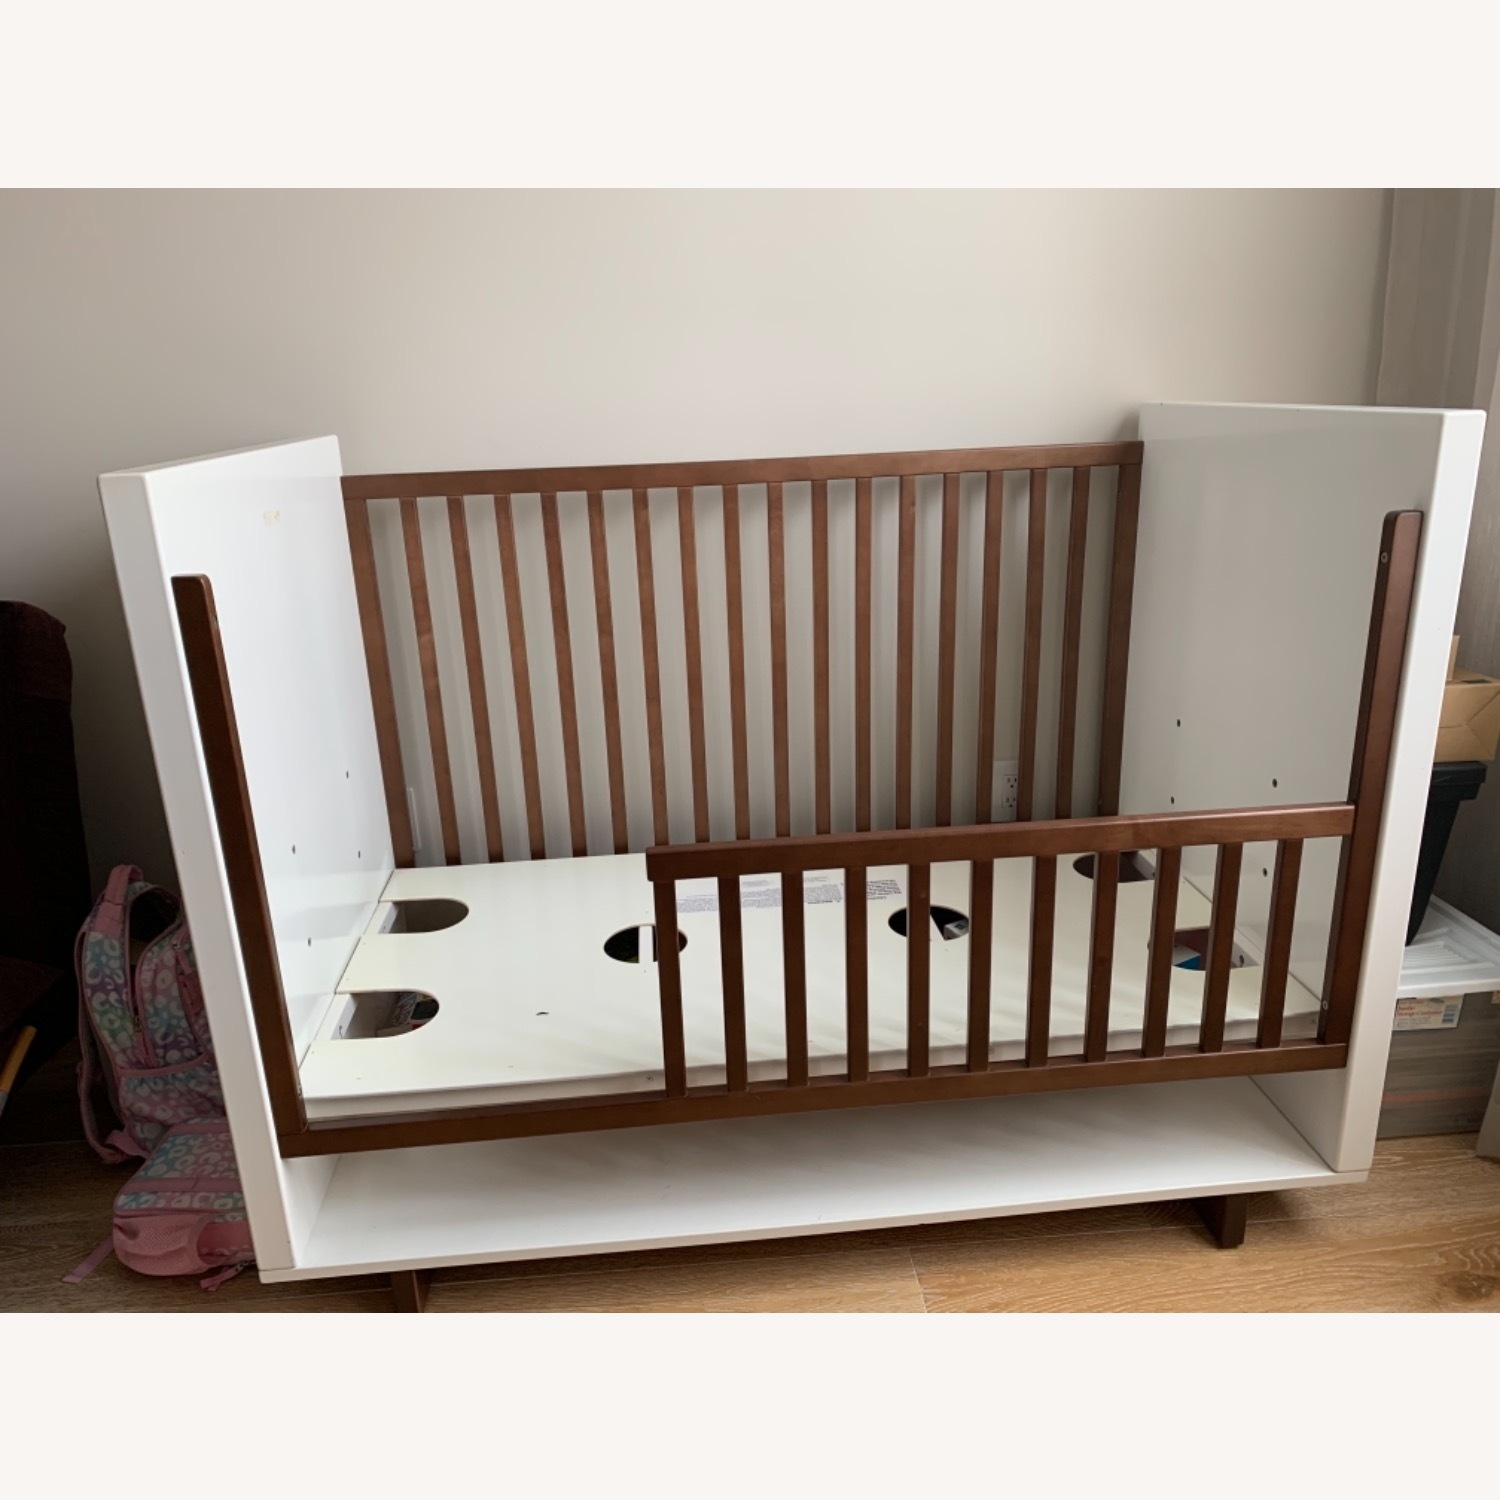 Room & Board Moda Crib and Toddler Bed - image-2